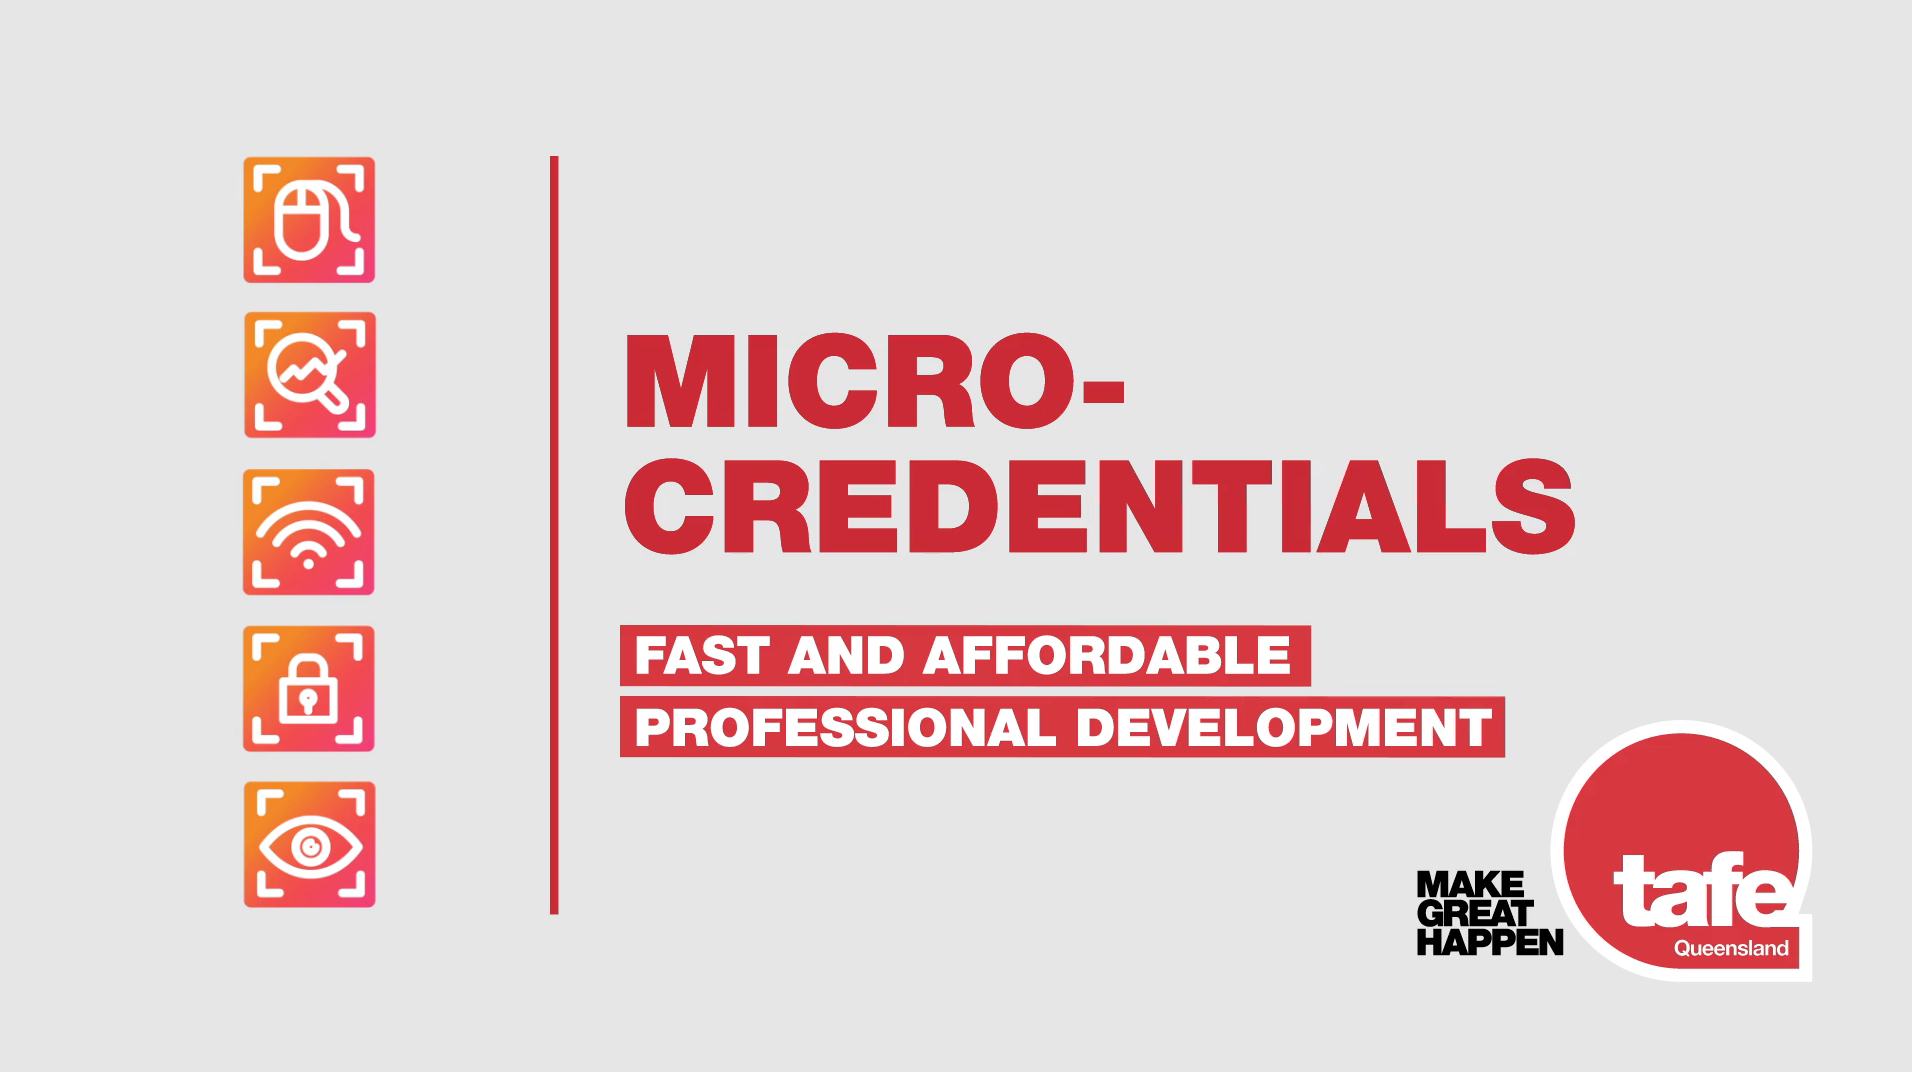 Introducing micro-credentials from TAFE Queensland